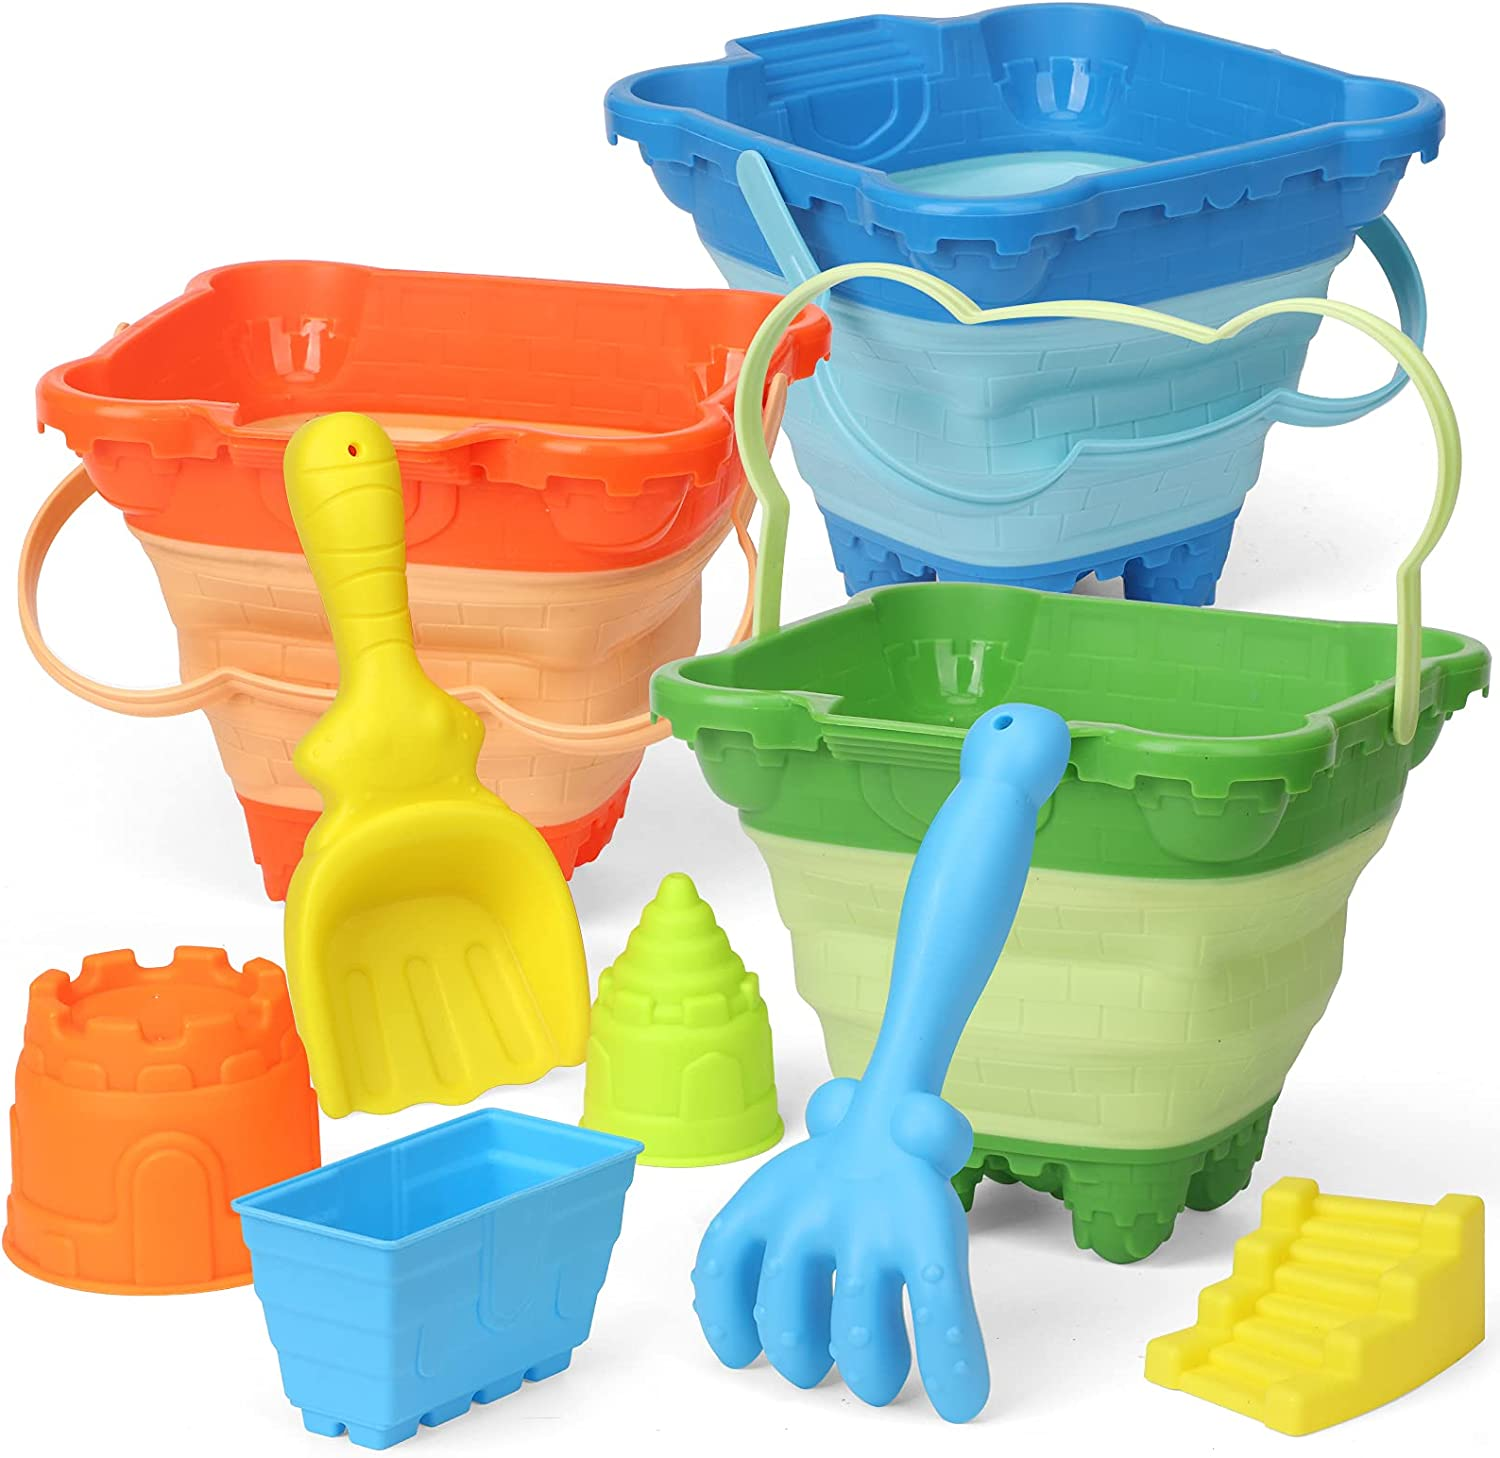 Castle Model Sand Max 58% OFF Buckets Pails Beach Toys 55% OFF Foldable